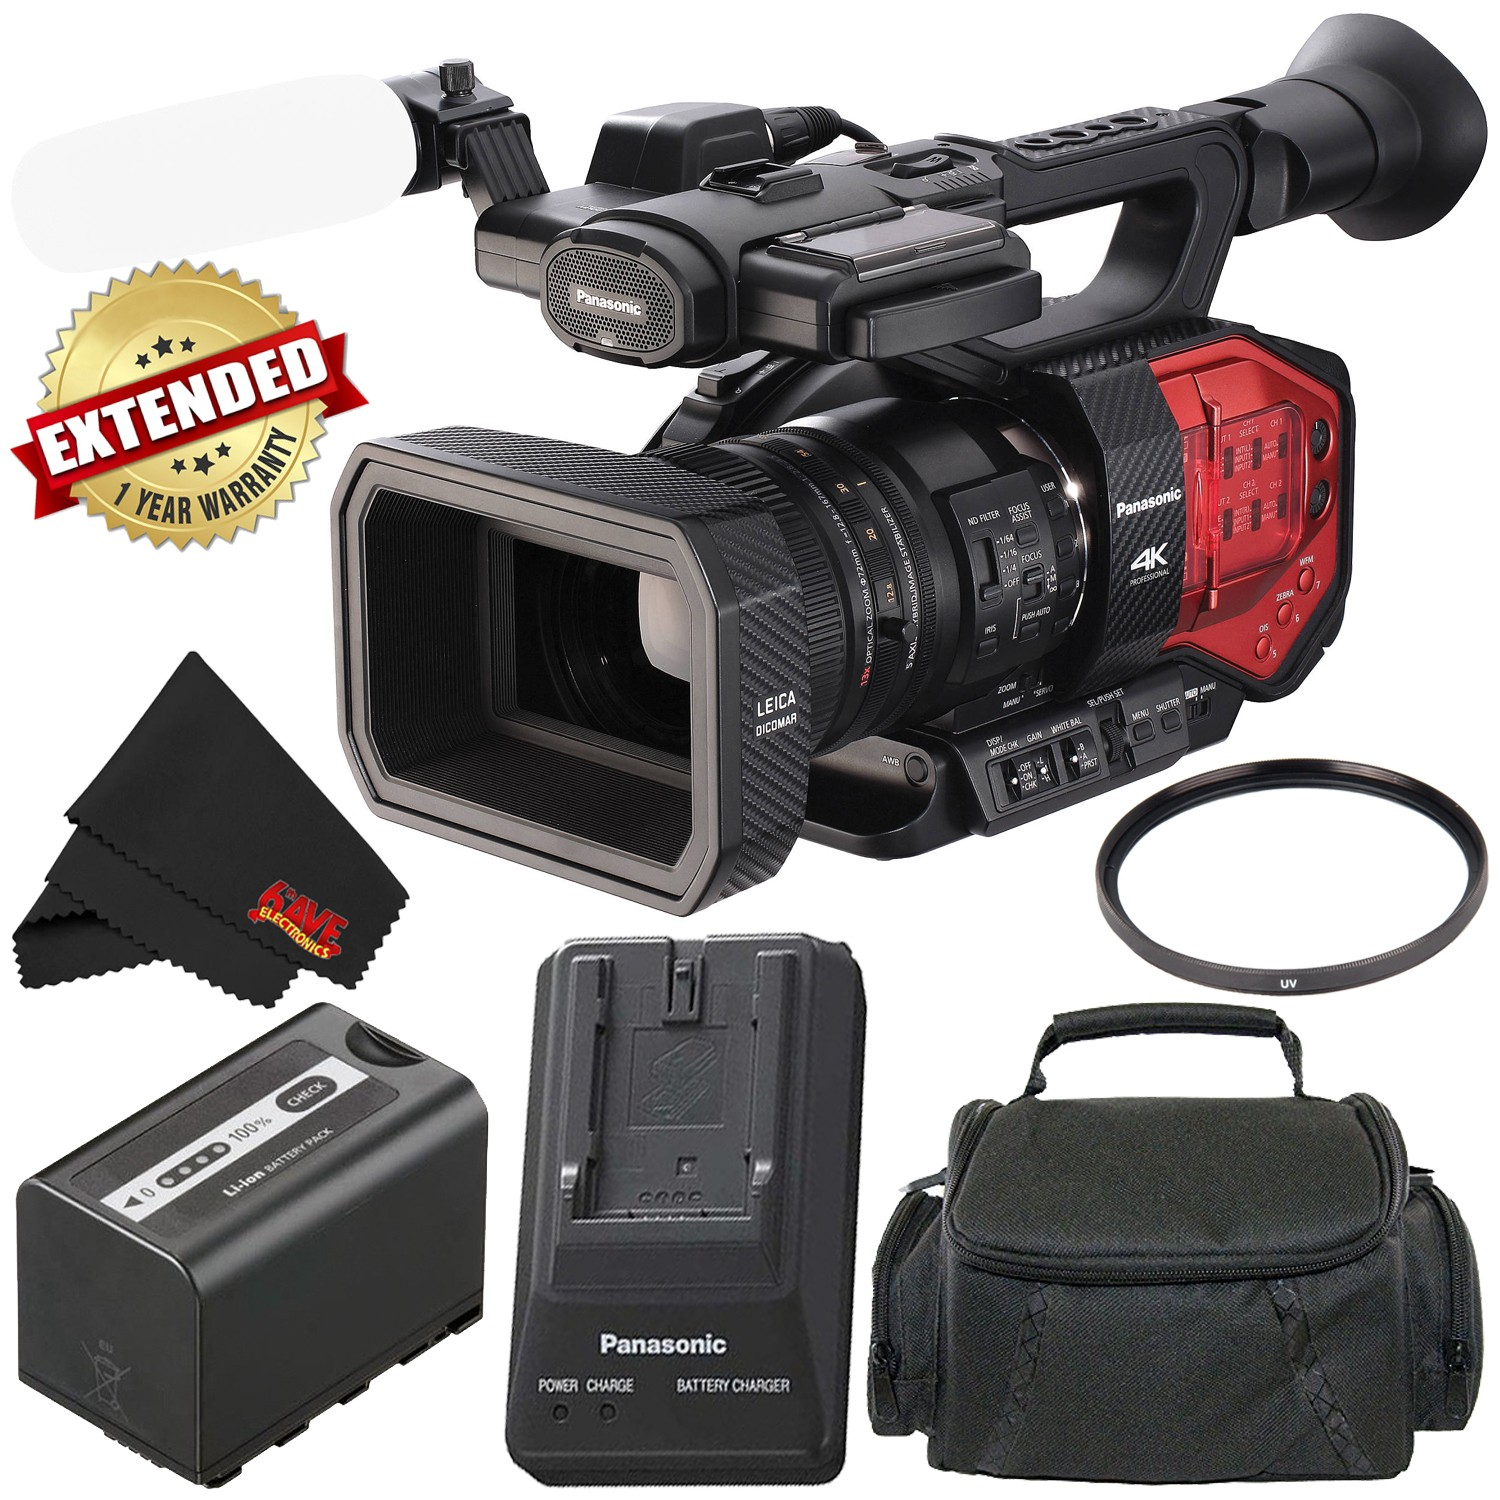 Panasonic AG-DVX200 4K Professional Camcorder (Intl Model) with Four Thirds Sensor and Integrated 13x Leica Zoom Lens - Bronze Level Bundle